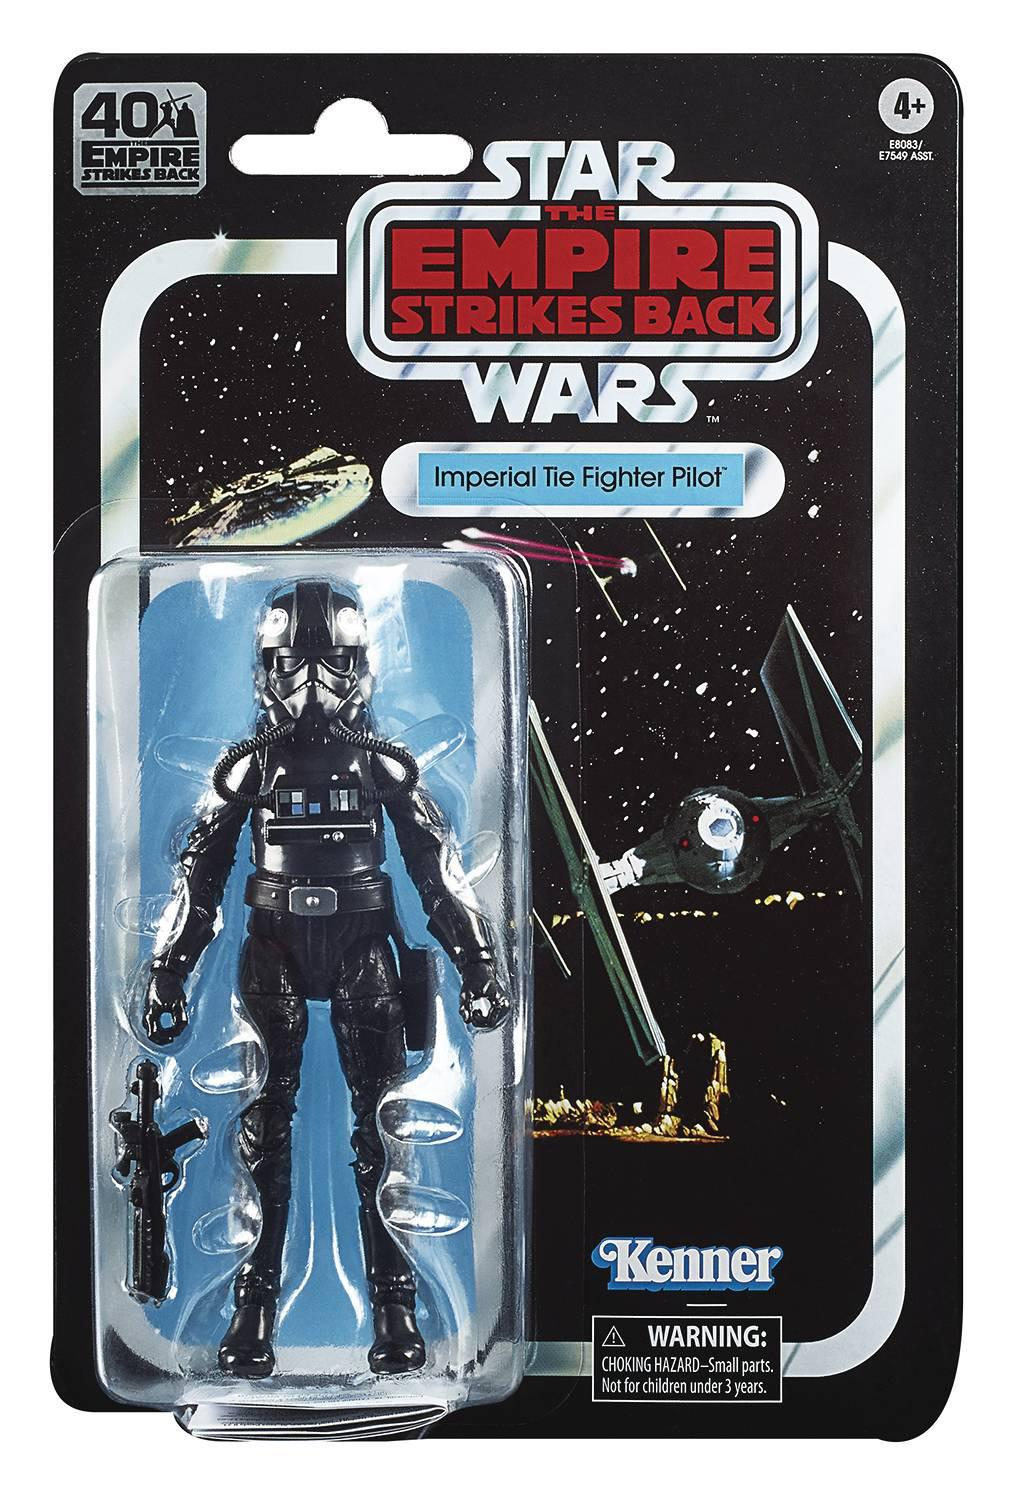 STAR WARS: THE BLACK SERIES - ESB 40TH ANNIVERSARY IMPERIAL TIE FIGHTER PILOT